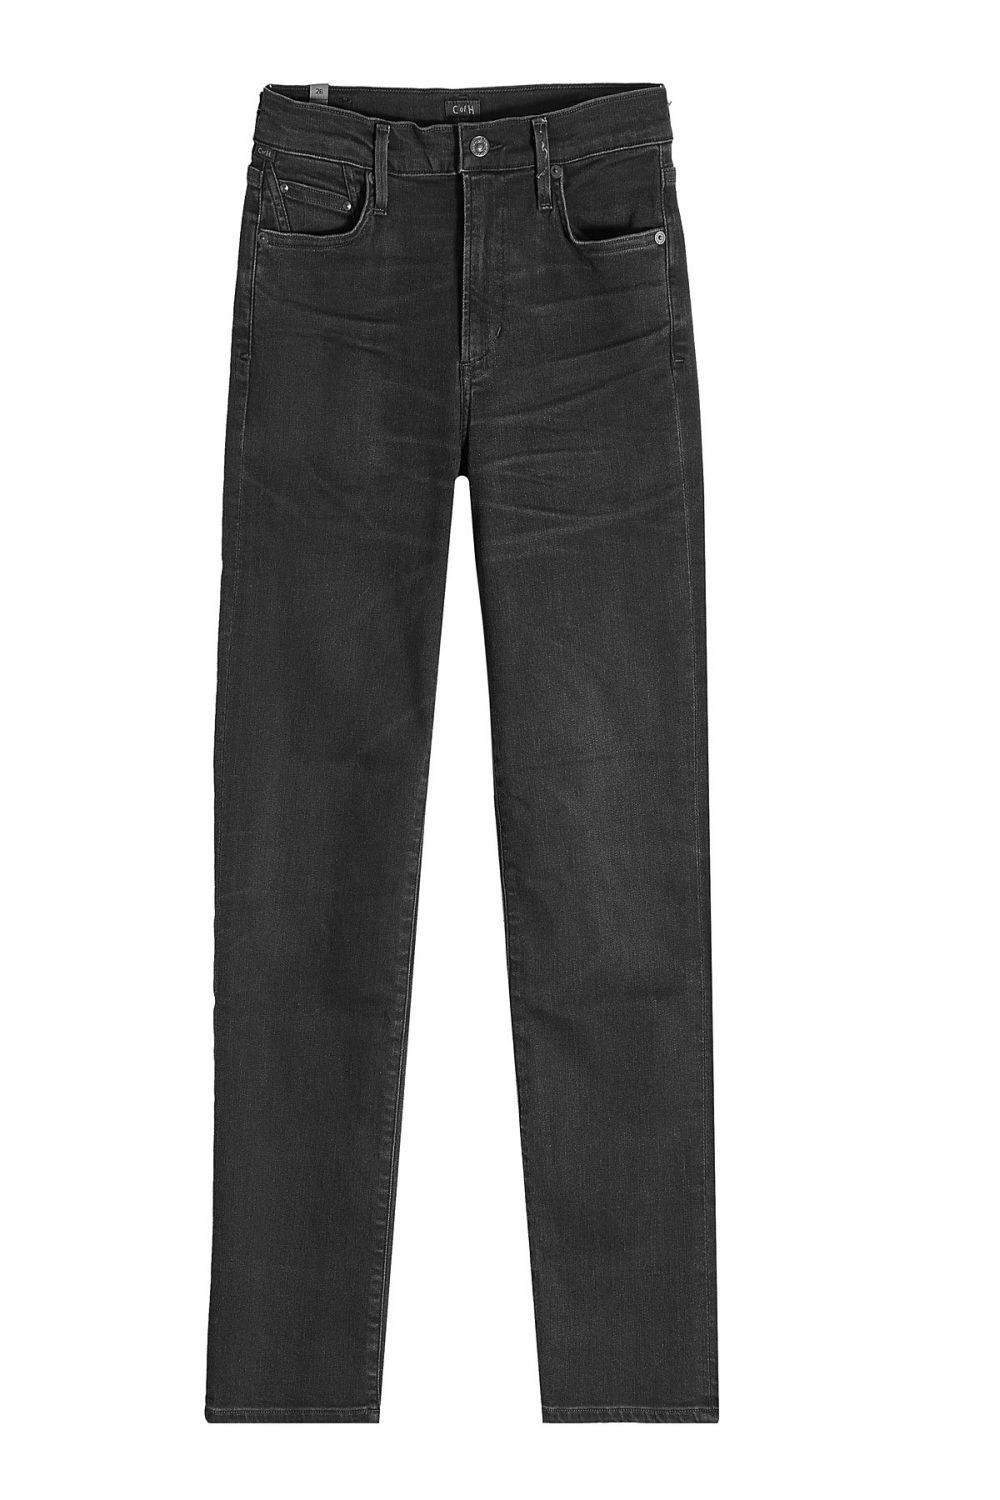 Jeans negros de Citizens Of Humanity (265 euros)